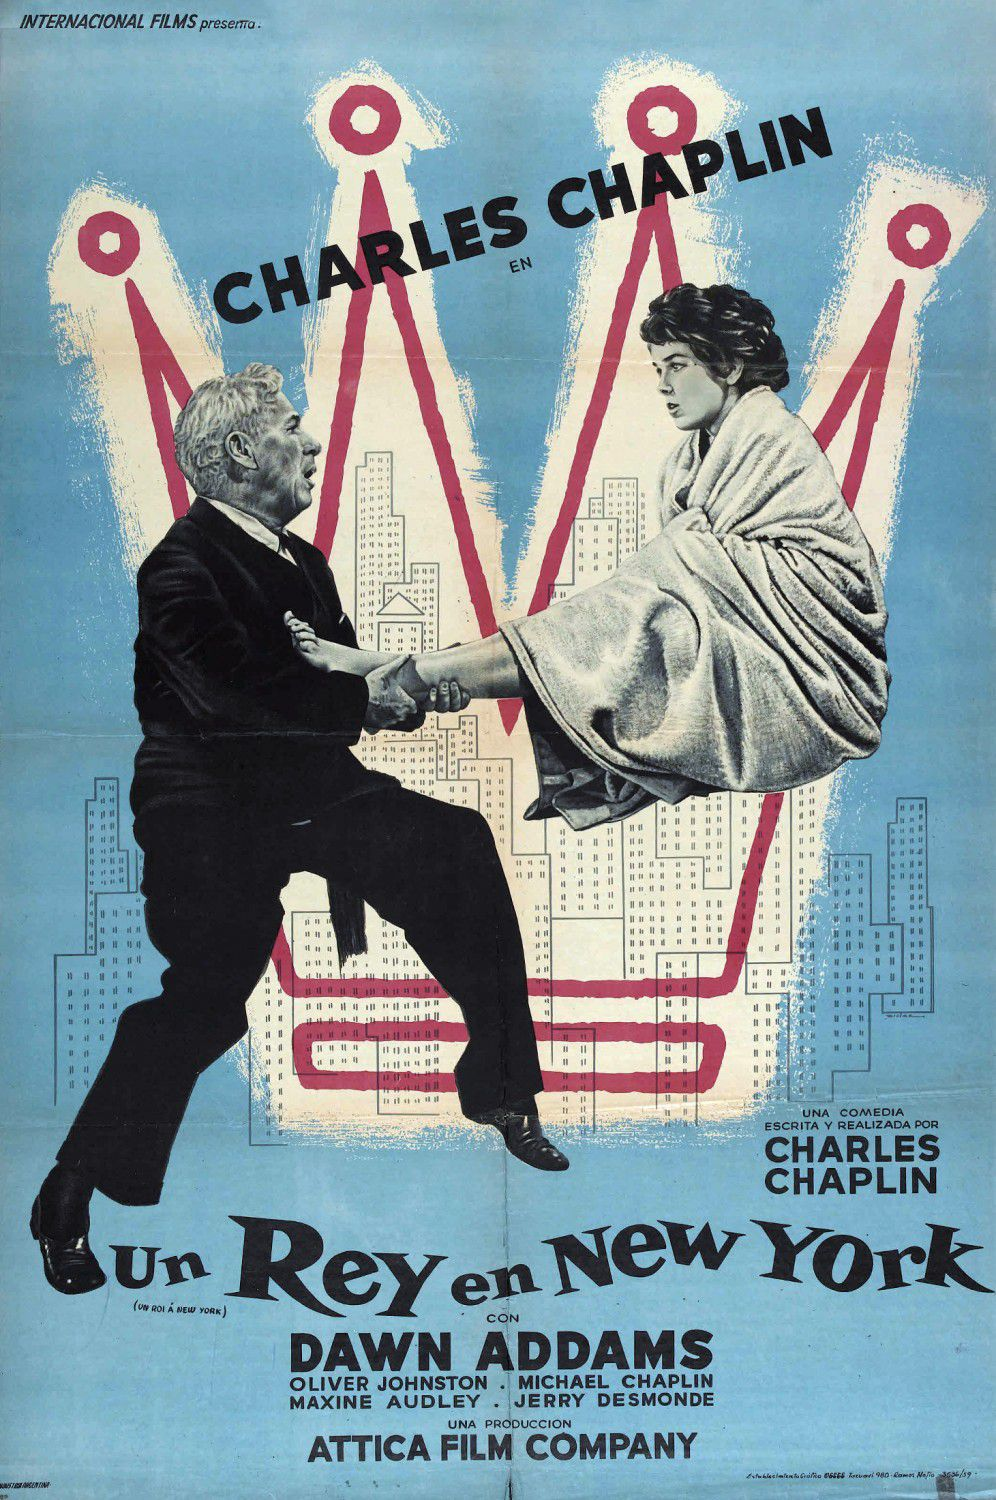 Film - Charlie Chaplin - 1957 - King in New York - Re di NY